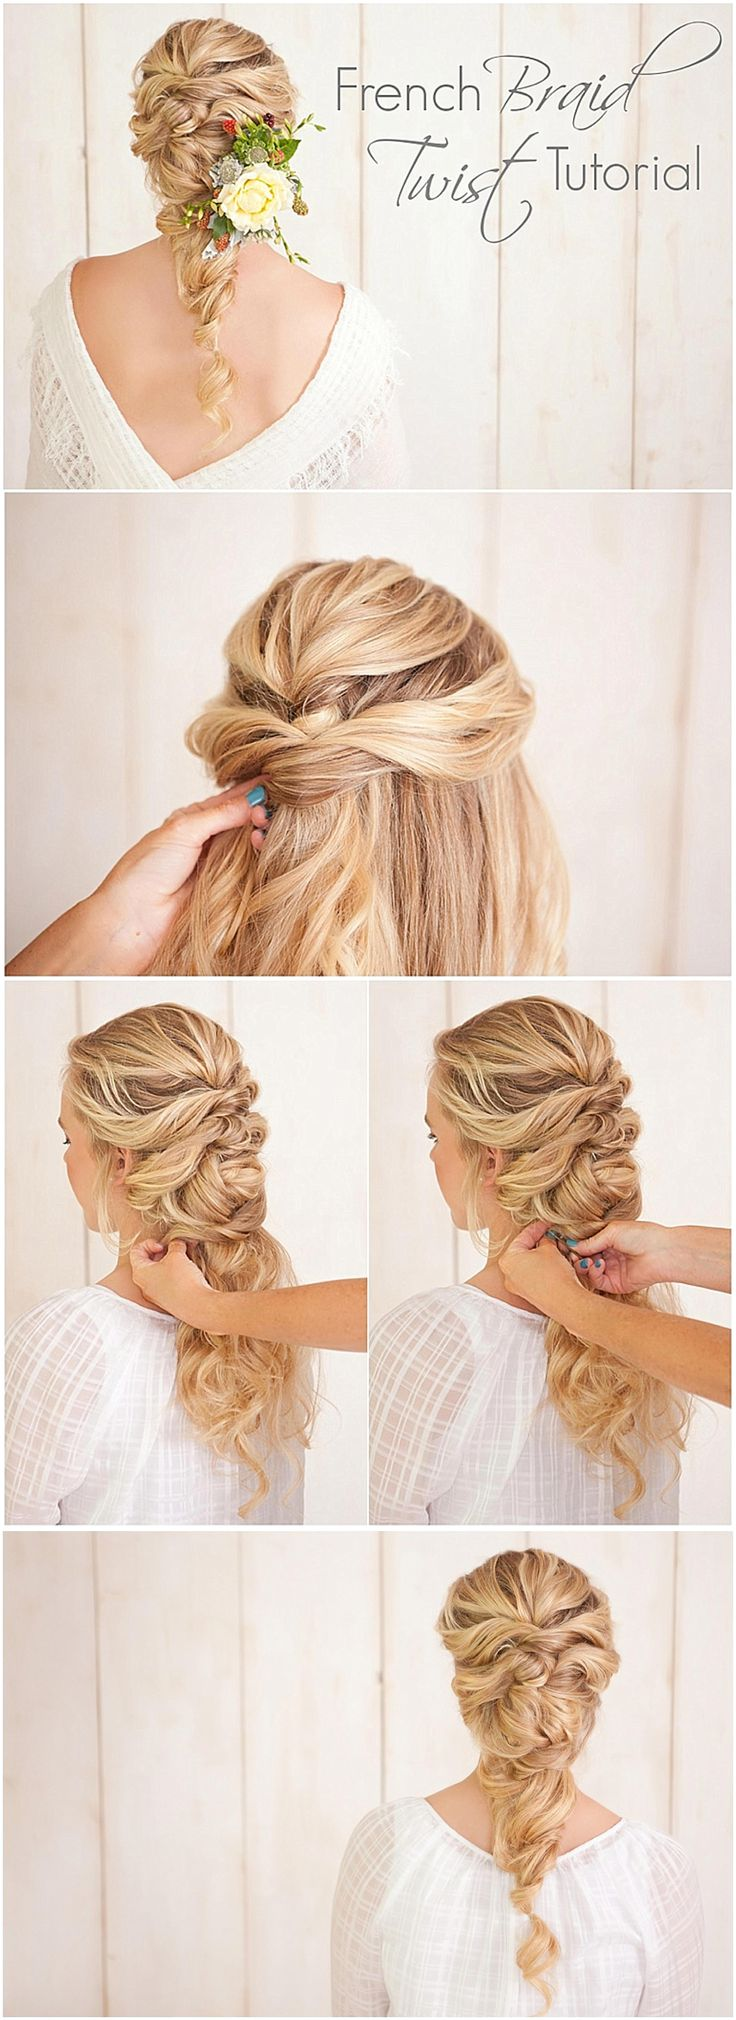 Prime 1000 Ideas About French Twist Tutorial On Pinterest French Hairstyle Inspiration Daily Dogsangcom